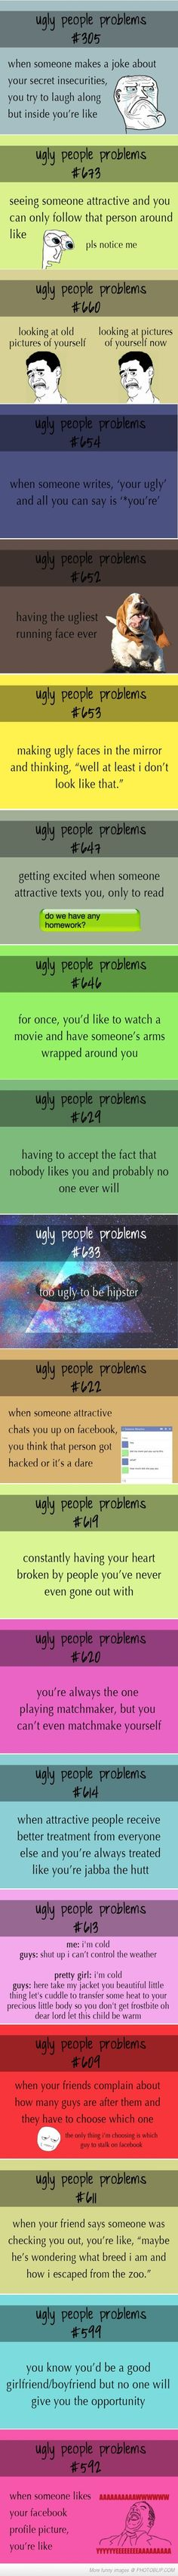 Okay guys, I'm not saying I'm ugly, and I'm not trying to get a pity party... I just find these hilarious and so relatable!